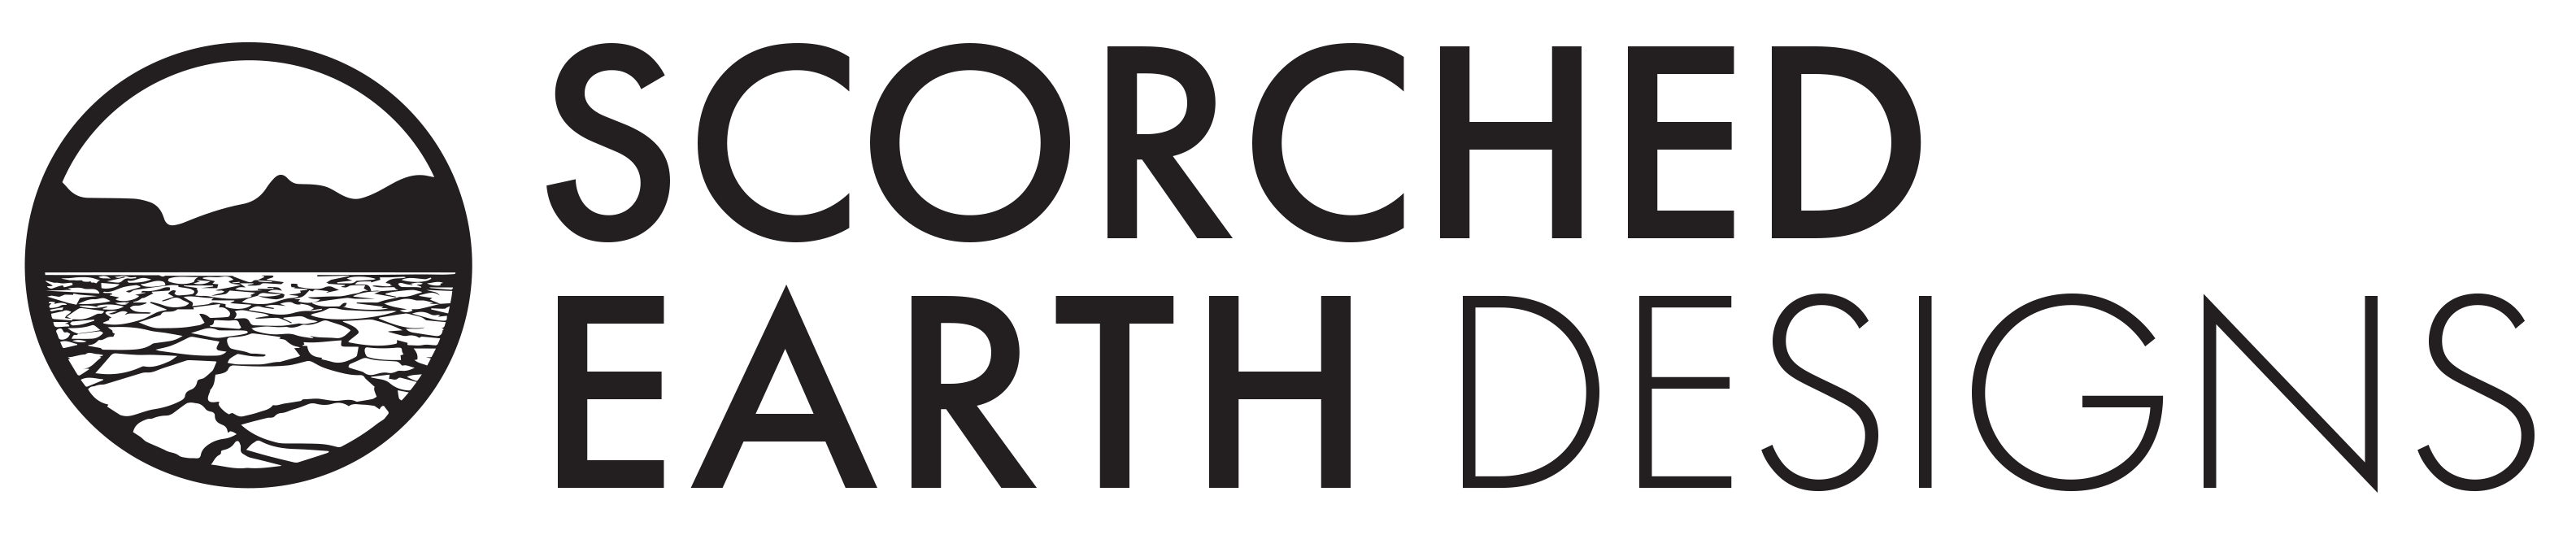 Scorched Earth Designs